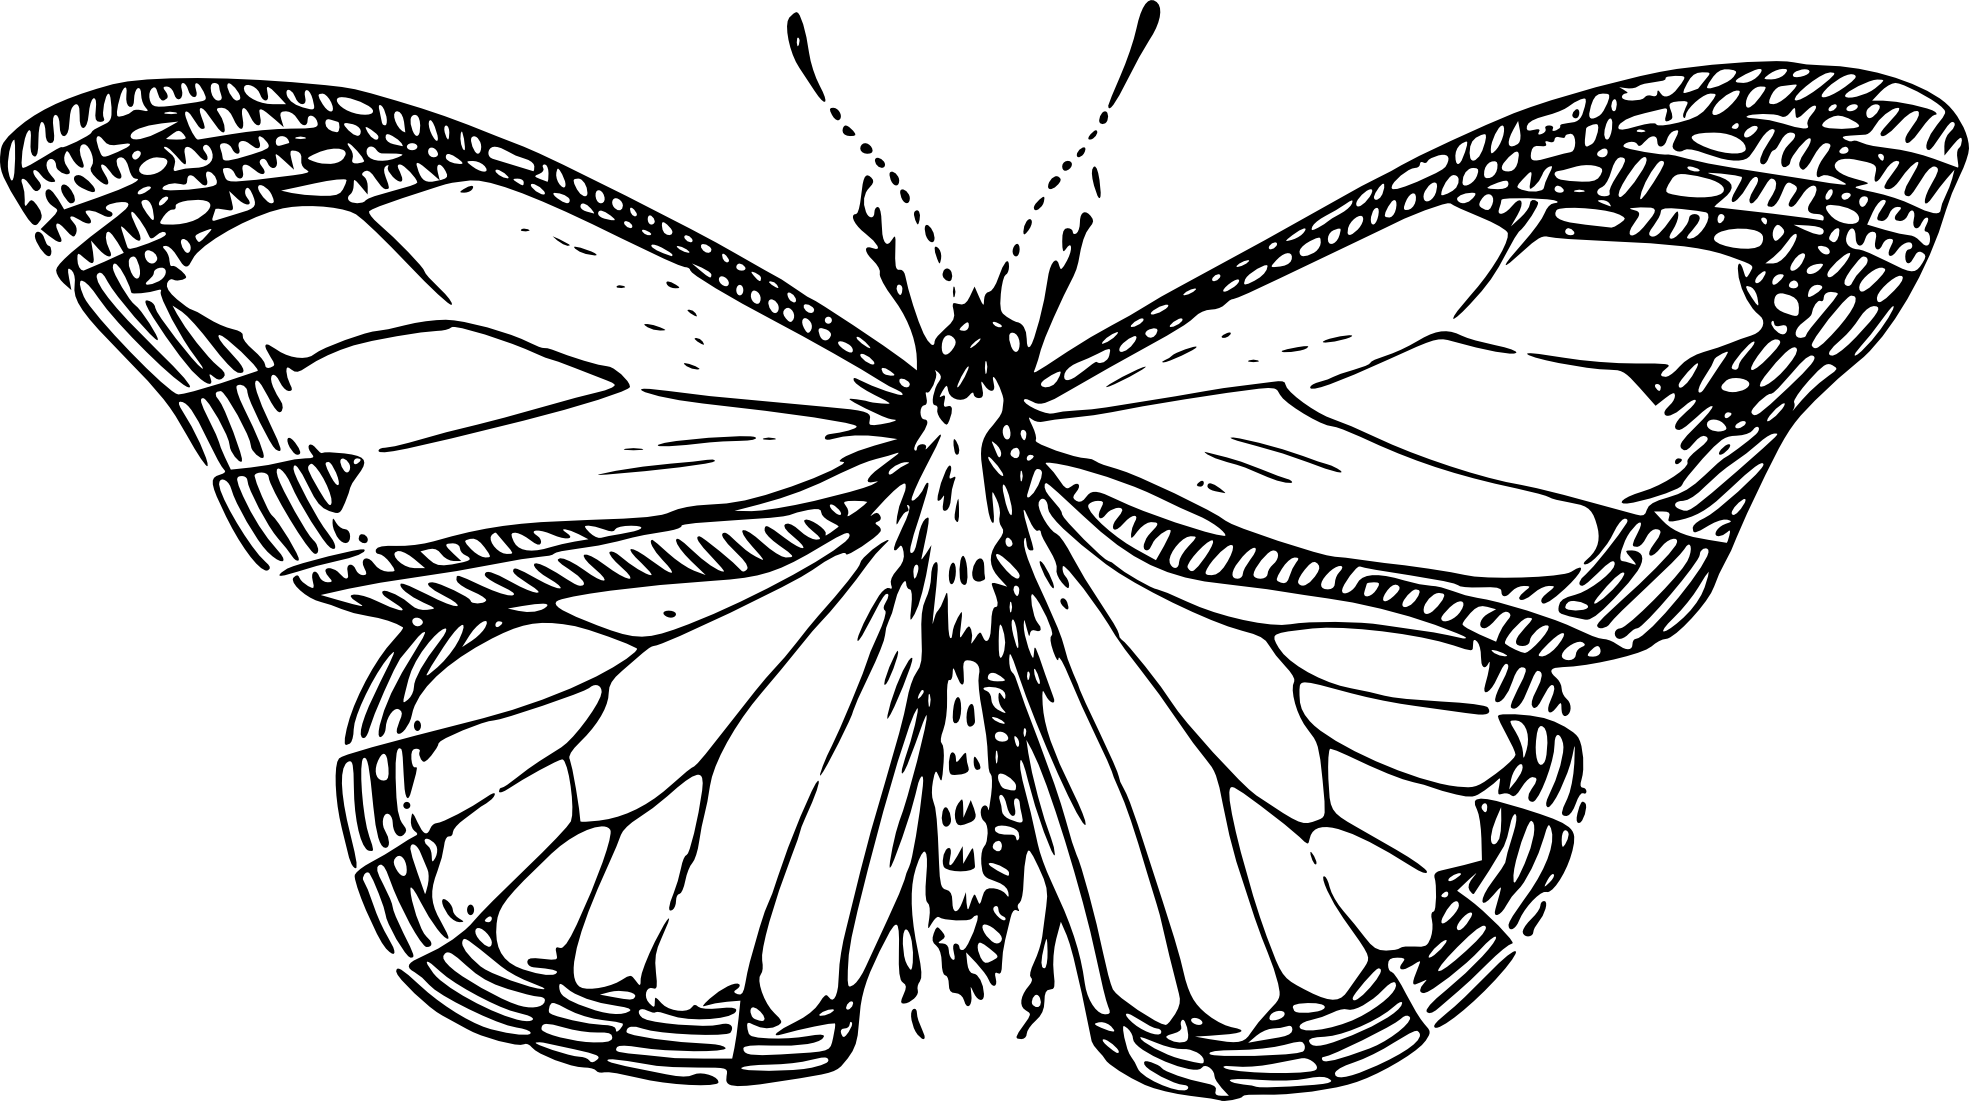 Vector Drawing Lines Java : Butterfly net drawing clipart panda free images